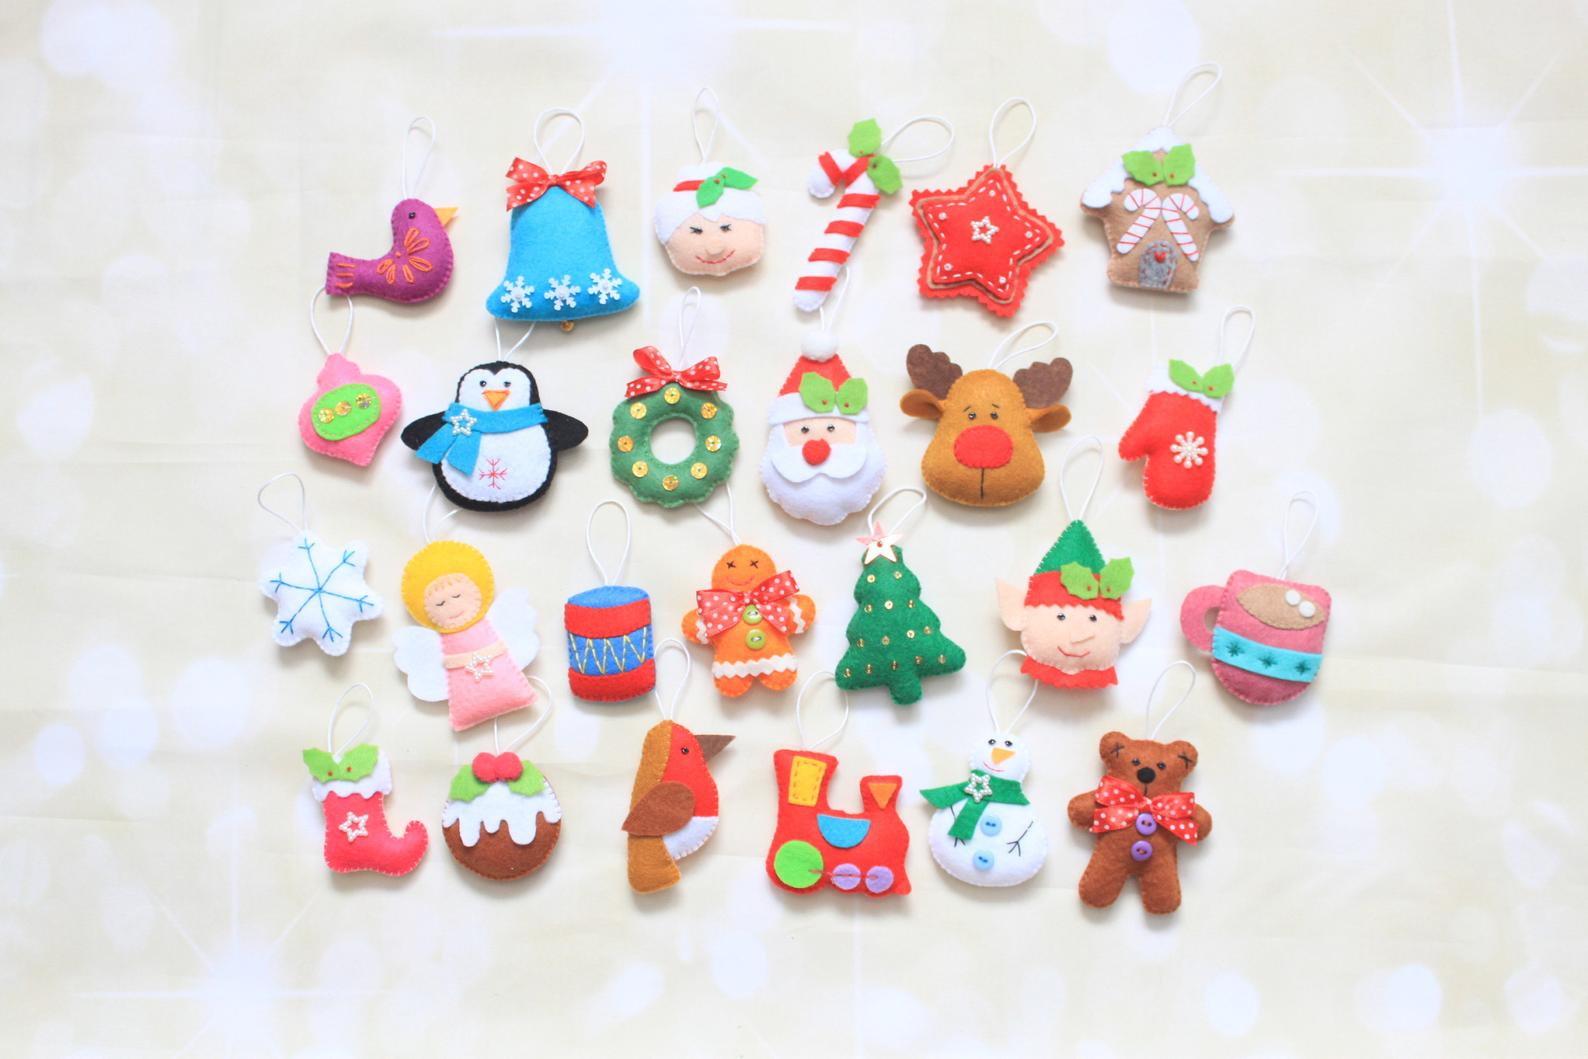 Christmas Ornaments for Advent Calendar By Miracle Inspiration